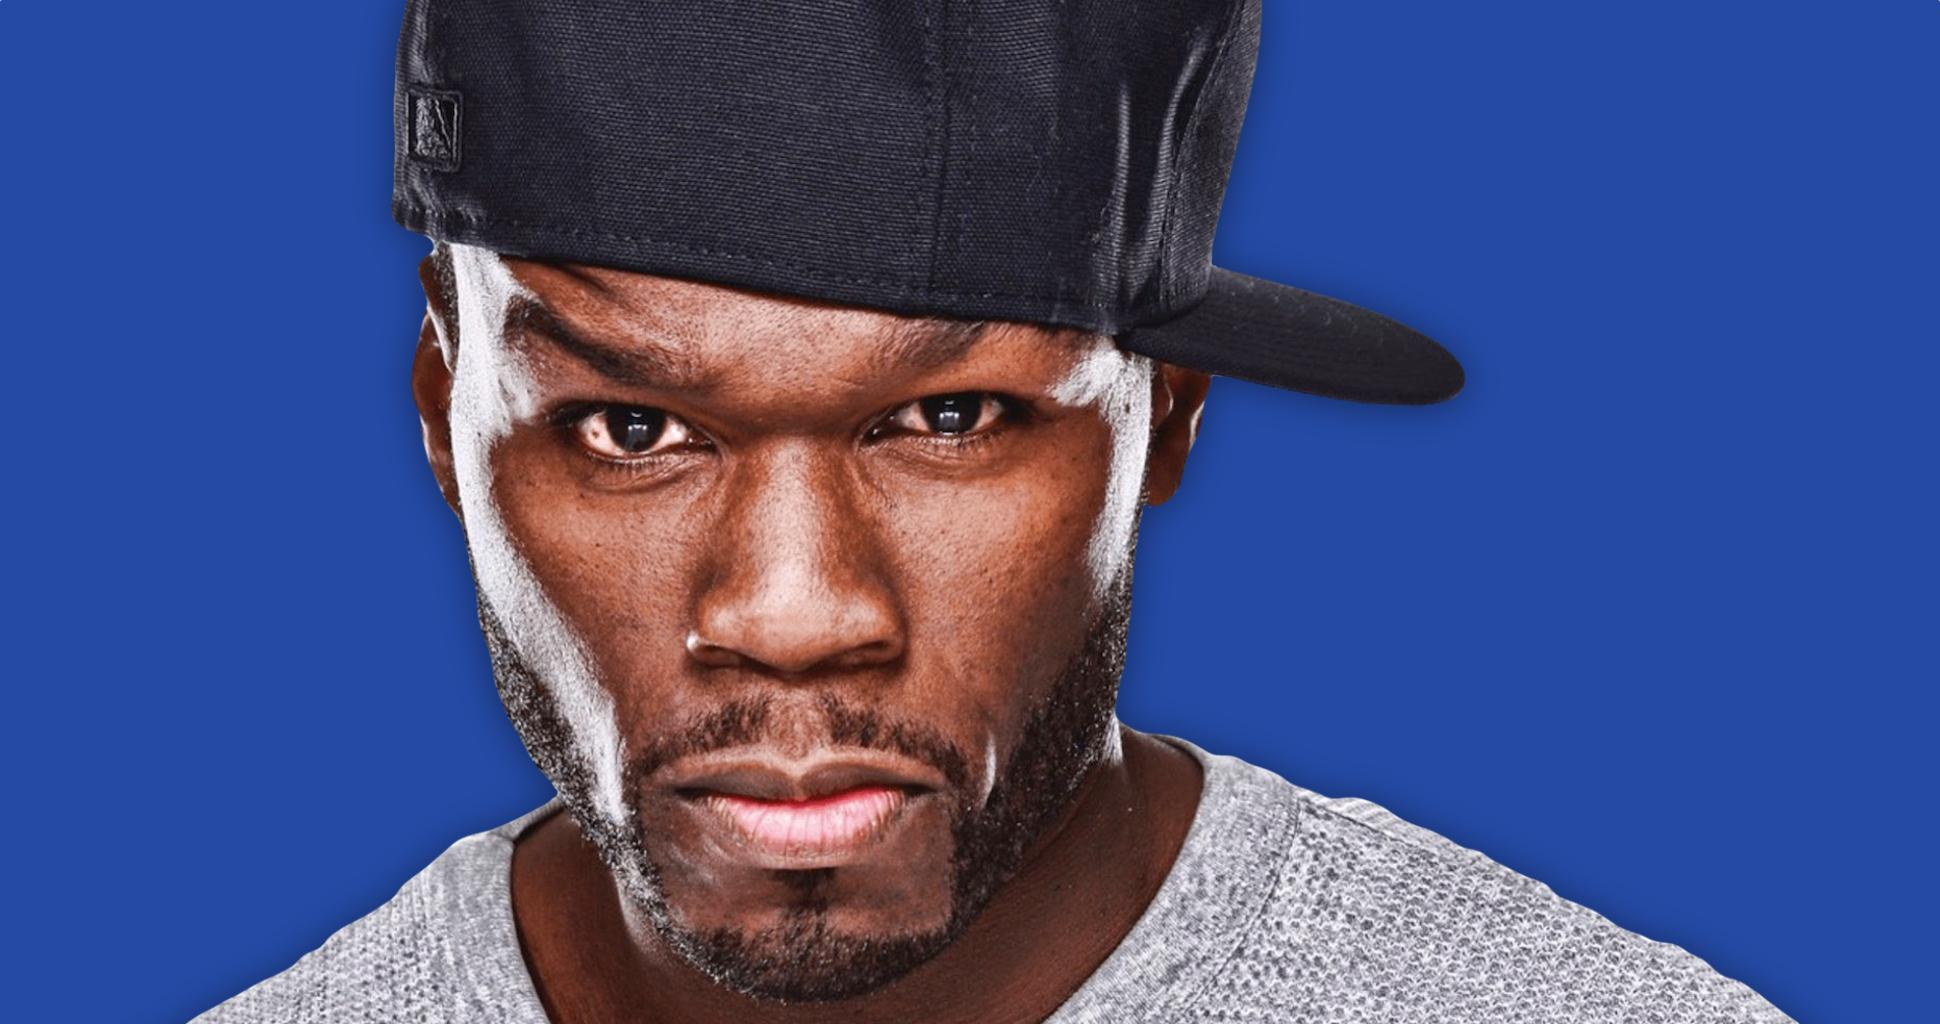 50 Cent Creates New Merch Inspired By The Rapper Who Pressed Him